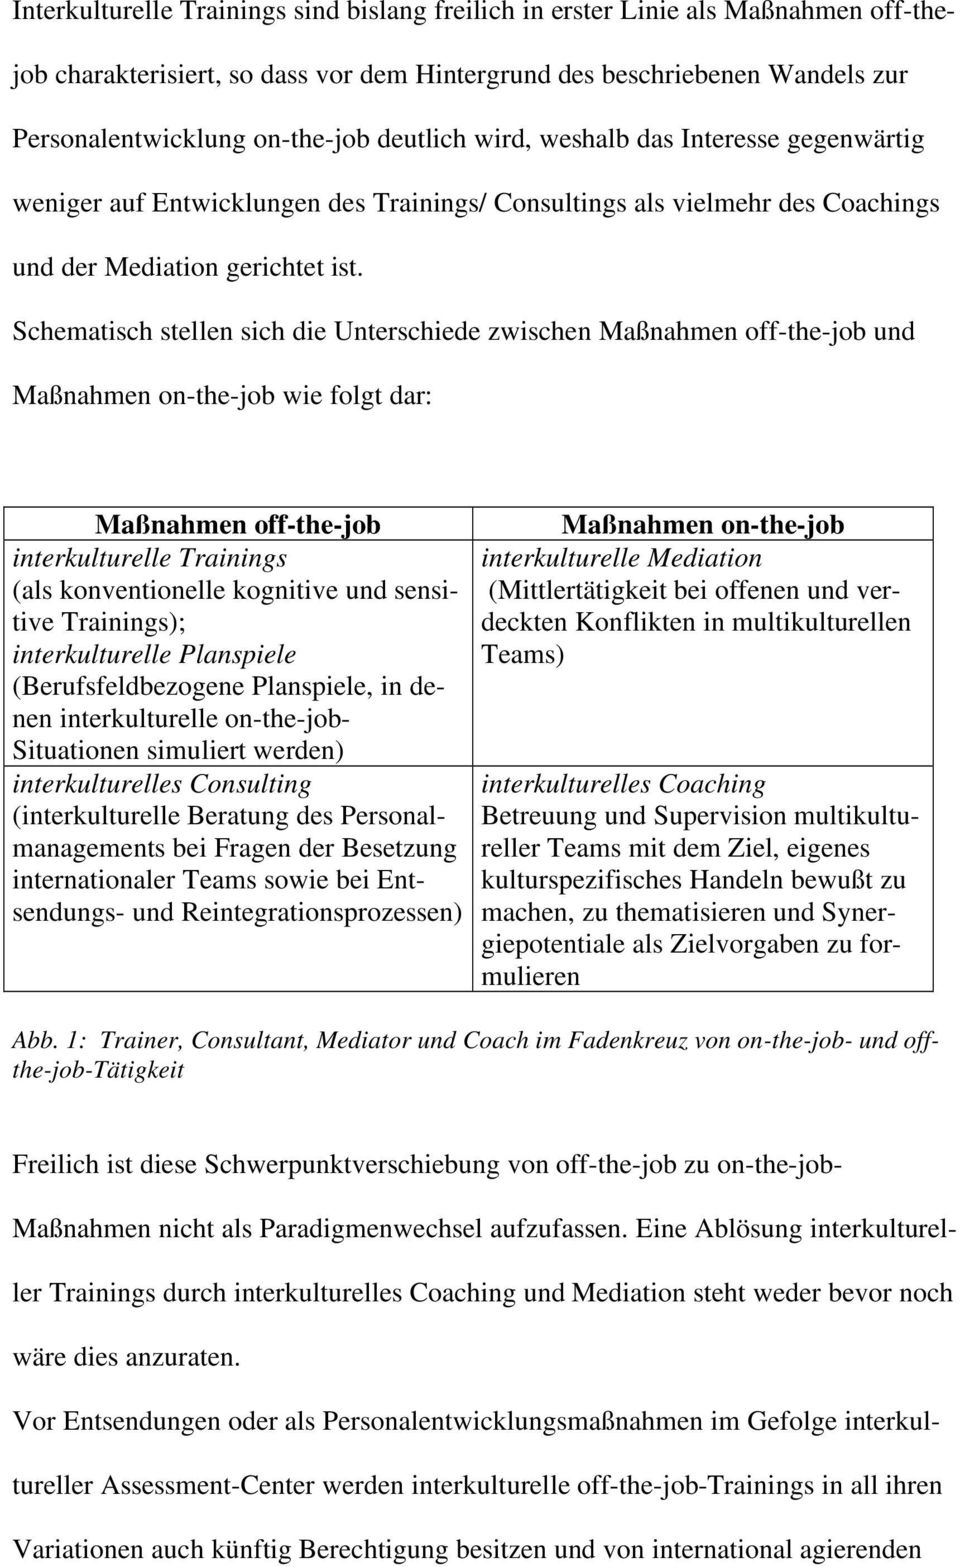 Schematisch stellen sich die Unterschiede zwischen Maßnahmen off-the-job und Maßnahmen on-the-job wie folgt dar: Maßnahmen off-the-job interkulturelle Trainings (als konventionelle kognitive und